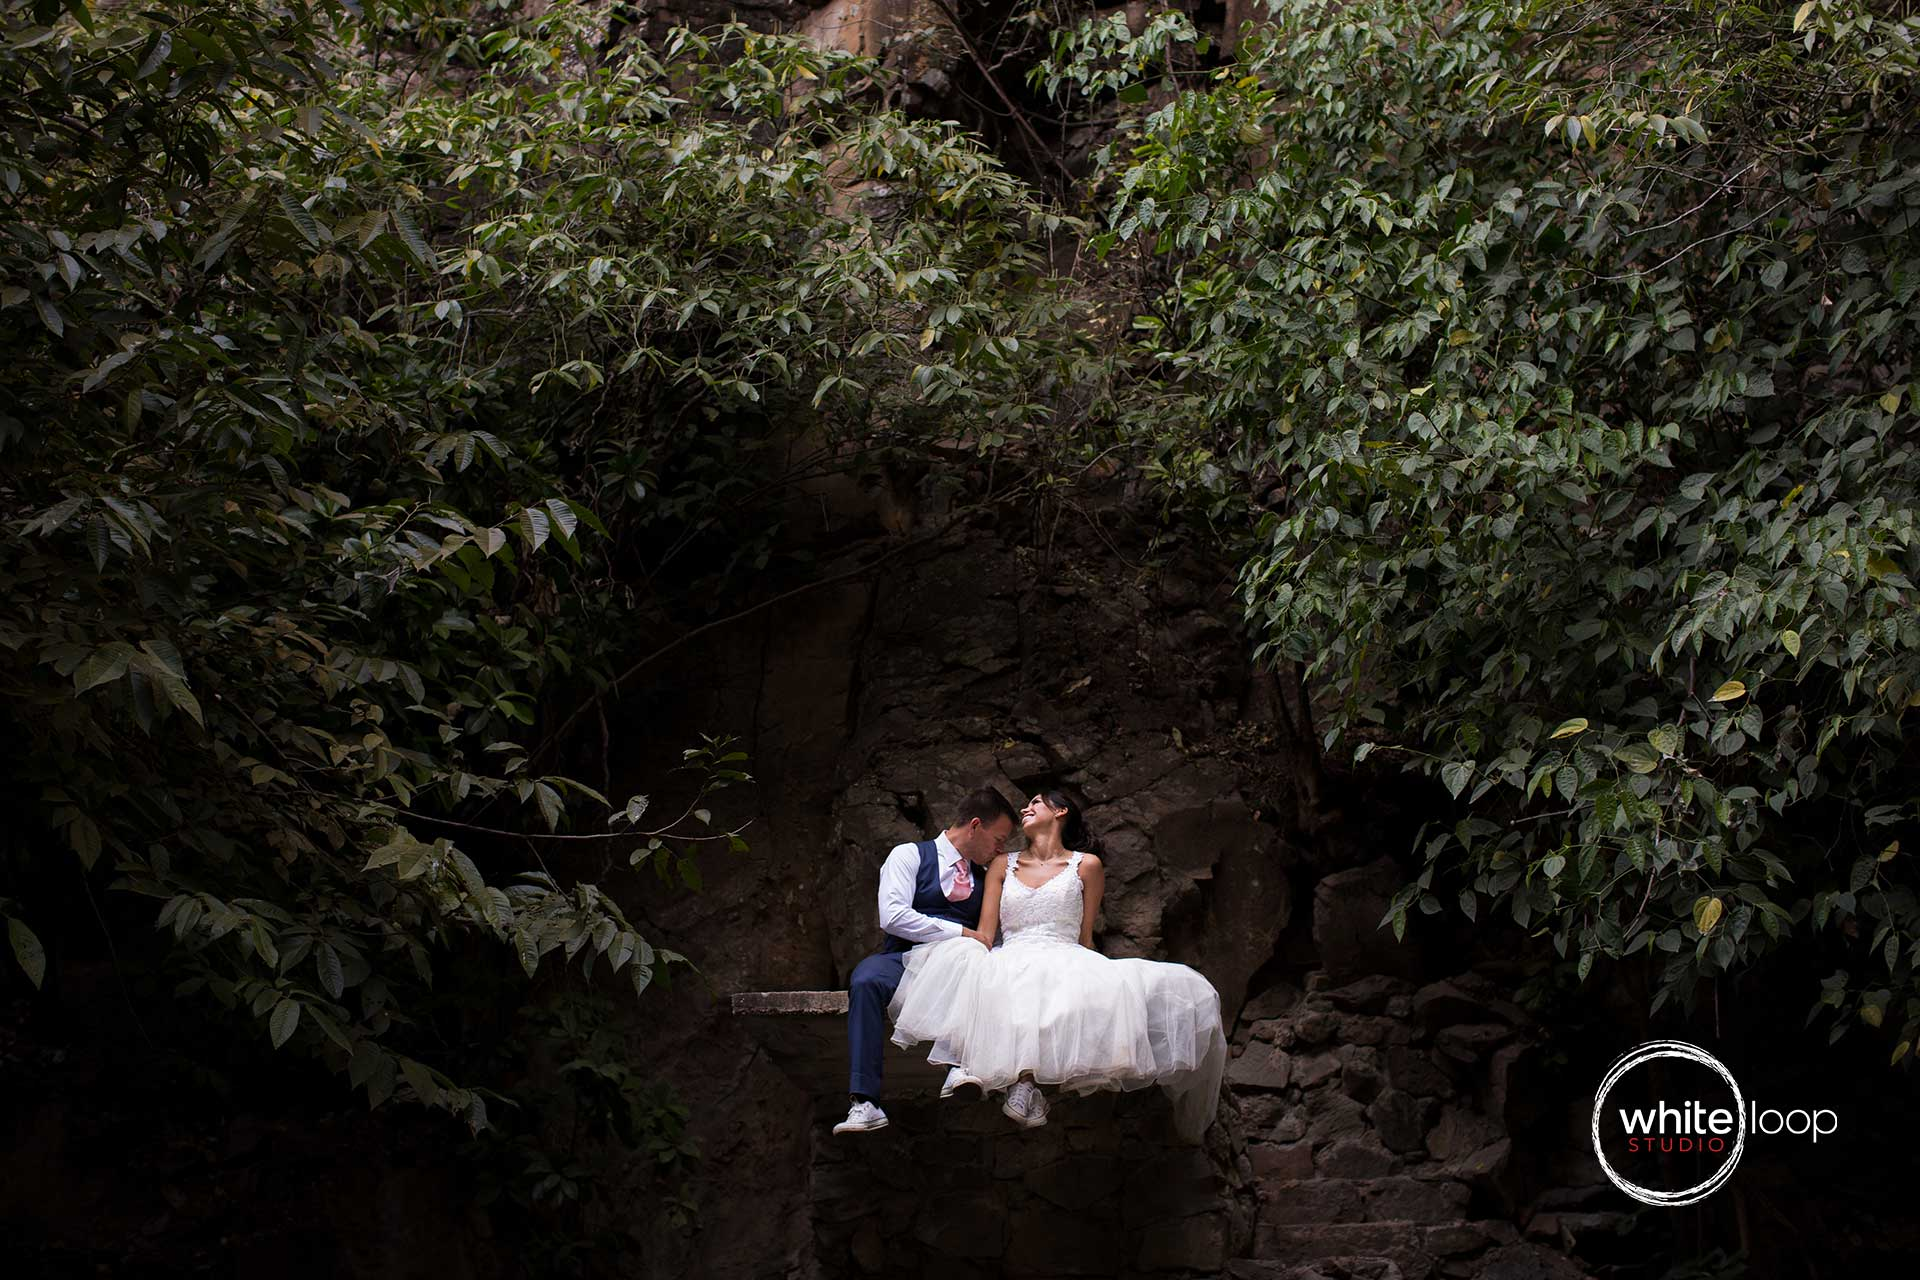 The bride and groom enjoying their love sitting on top of a mountain.